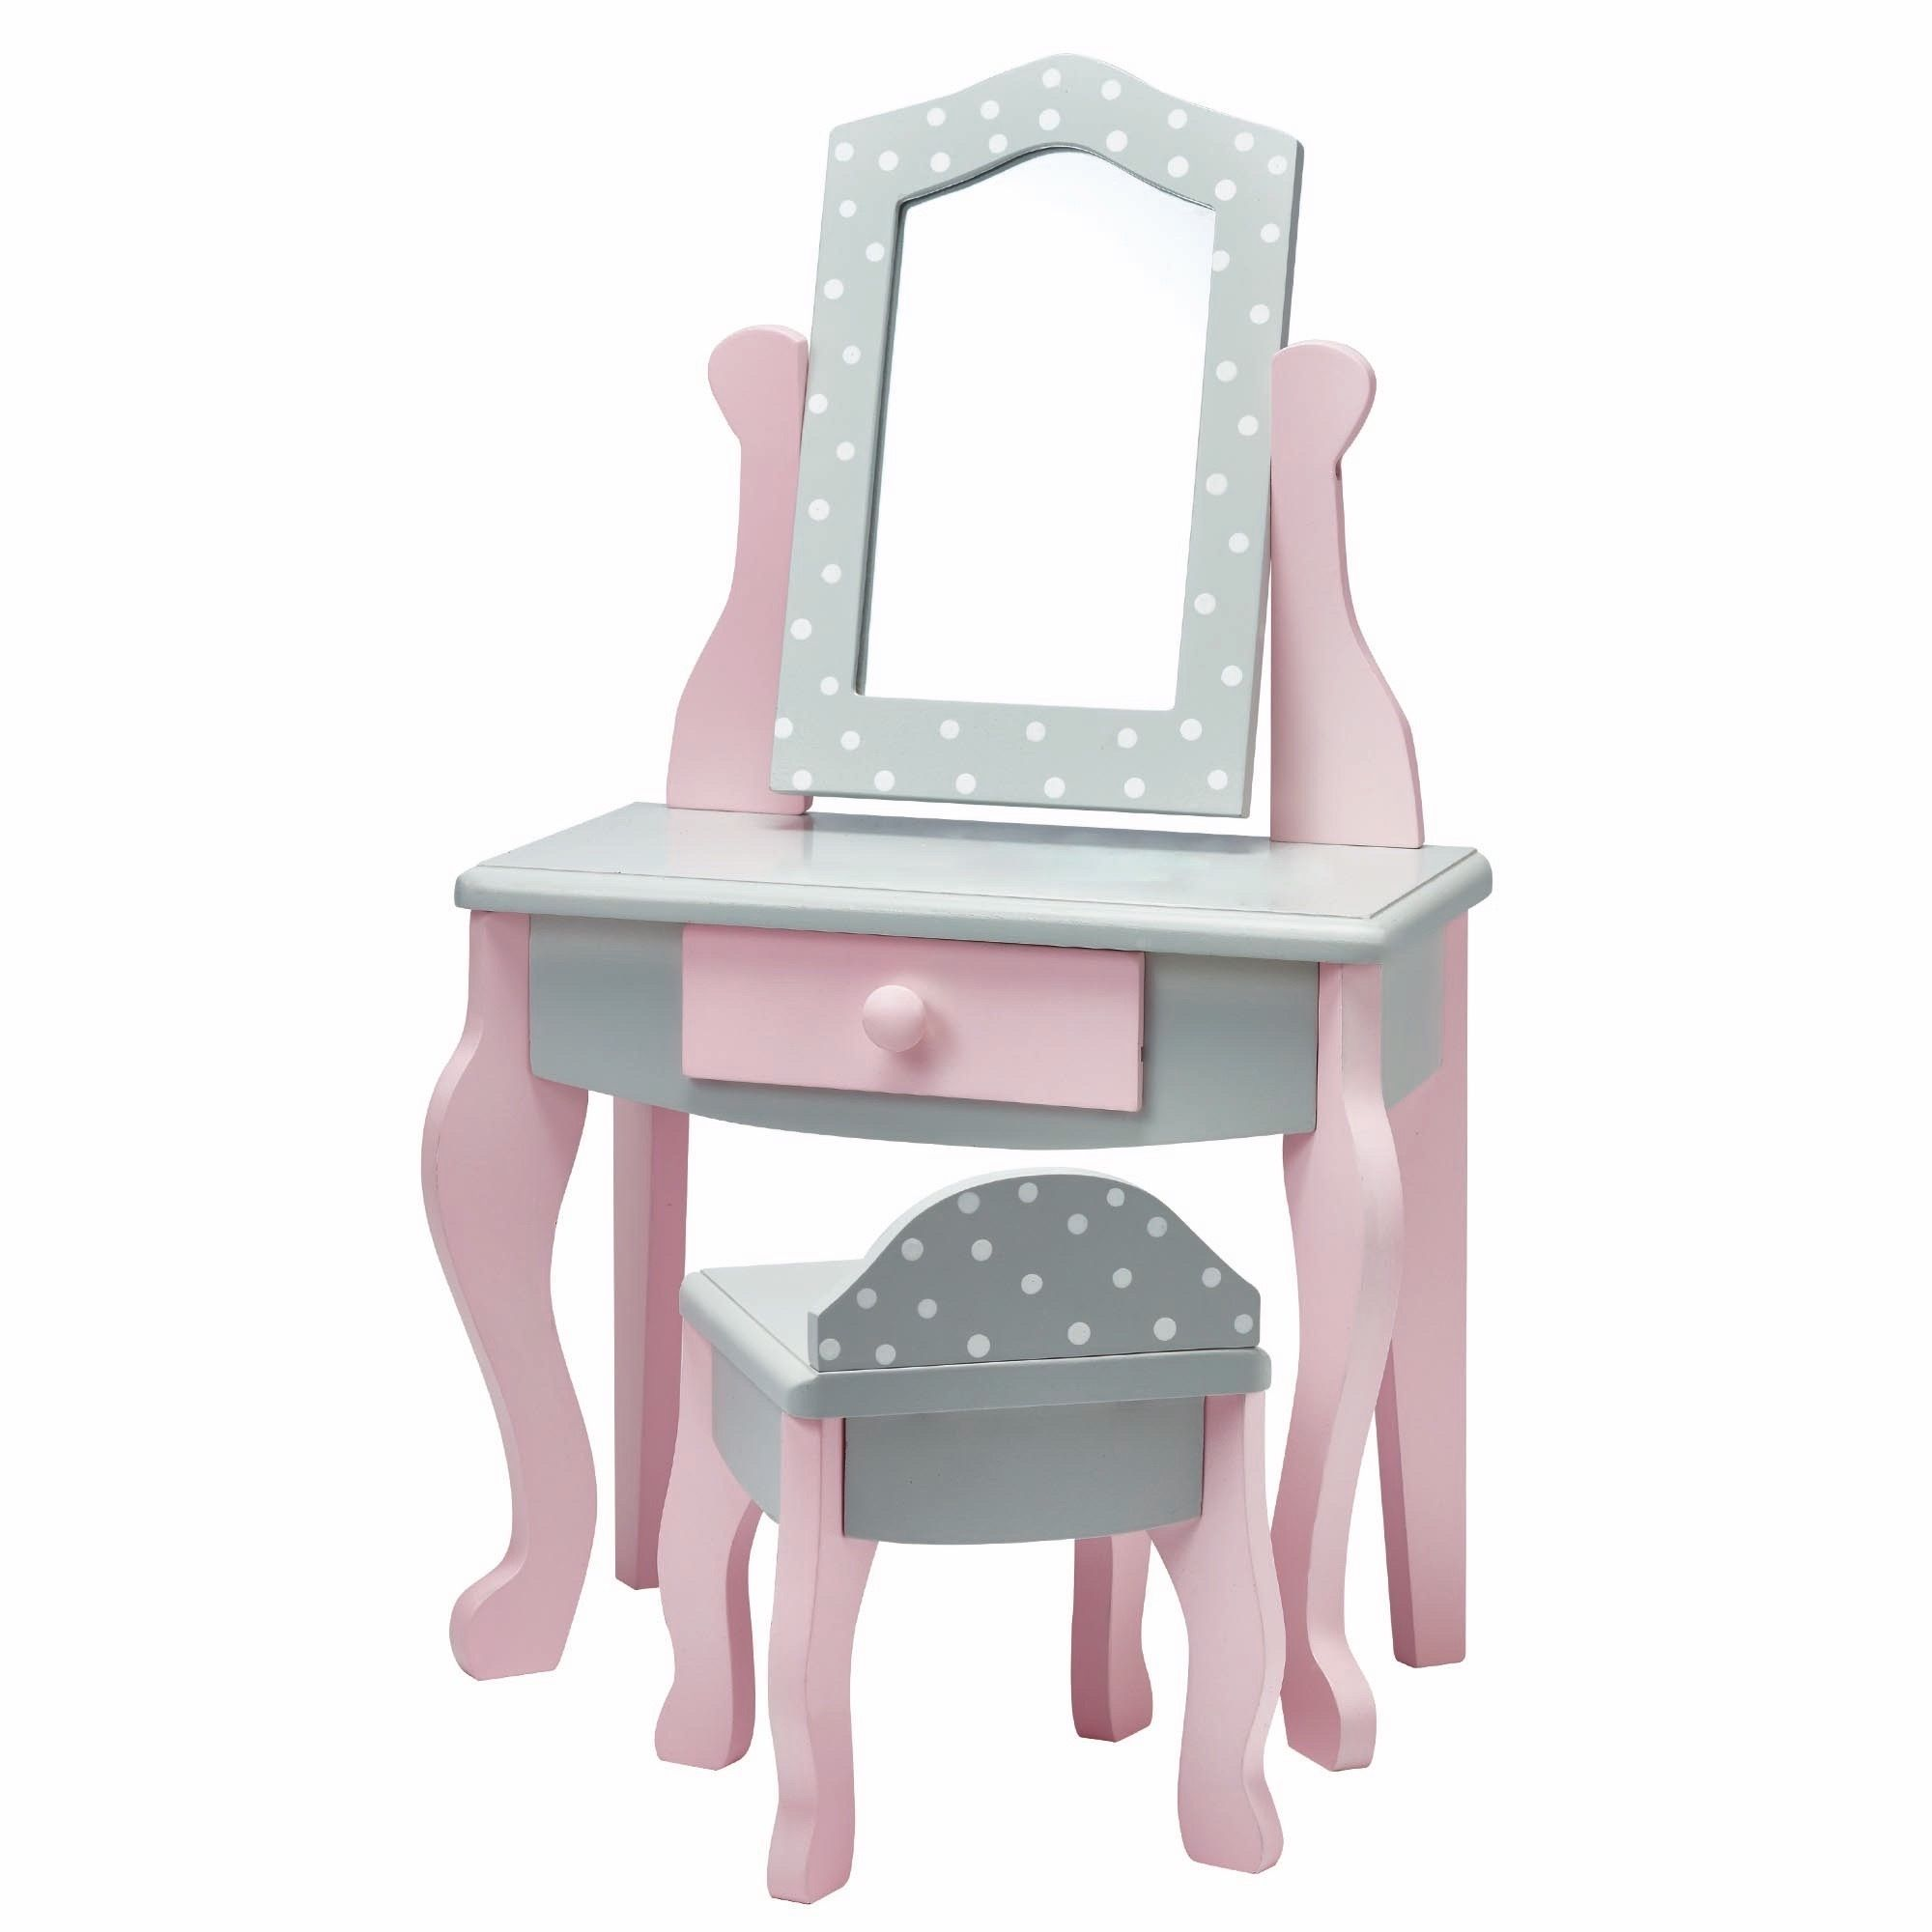 for full desk walmart comfortably four room of adjustable in height amazon interiors computer the size sit chairs mat is chair a vintage you design since customizing girls cute office